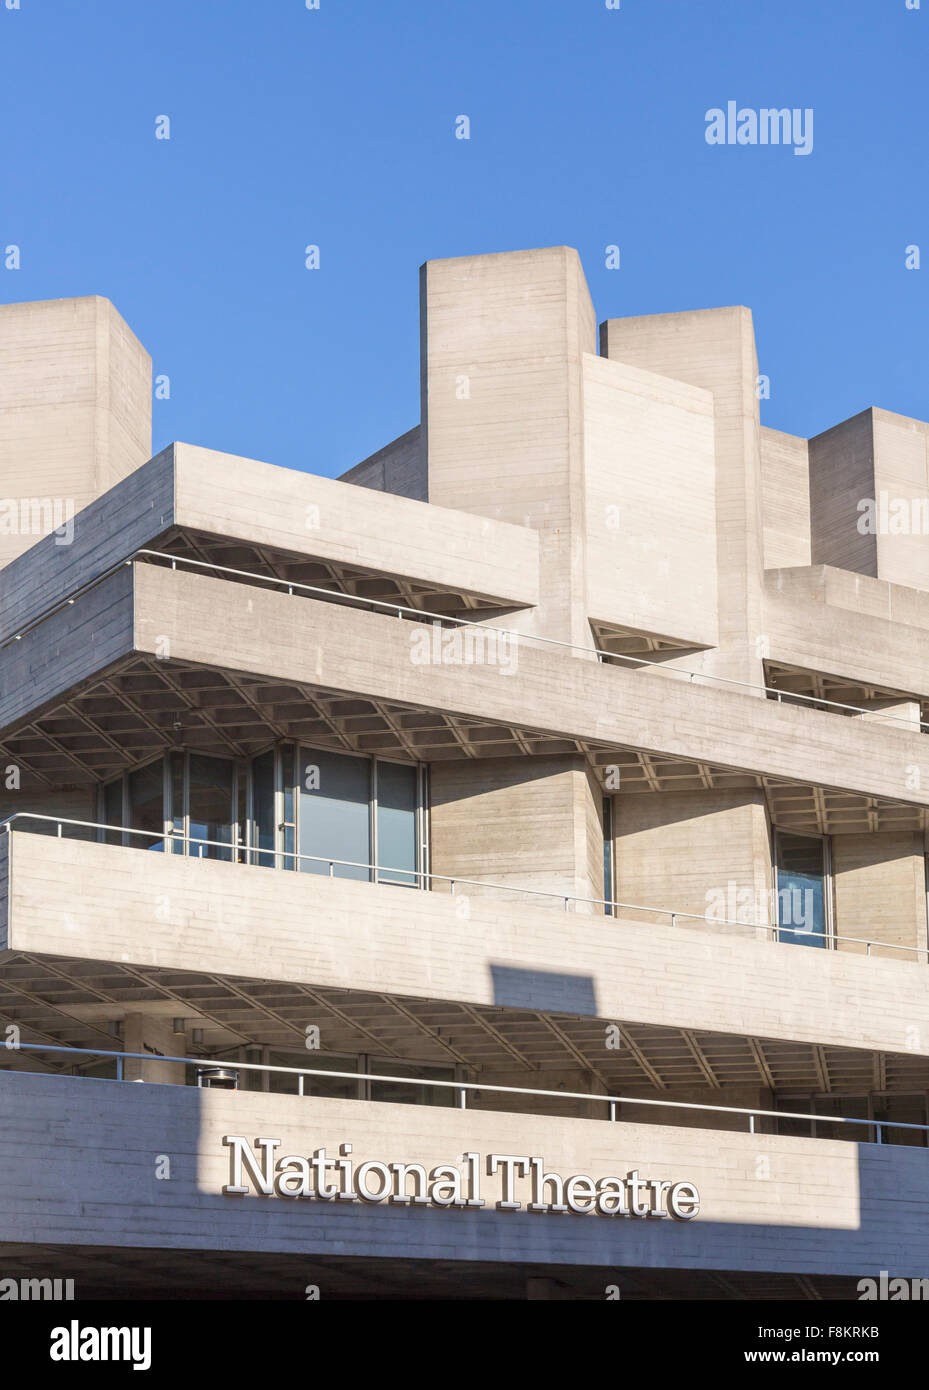 Entrance to National Theatre on South Bank, London, England, UK - Stock Image